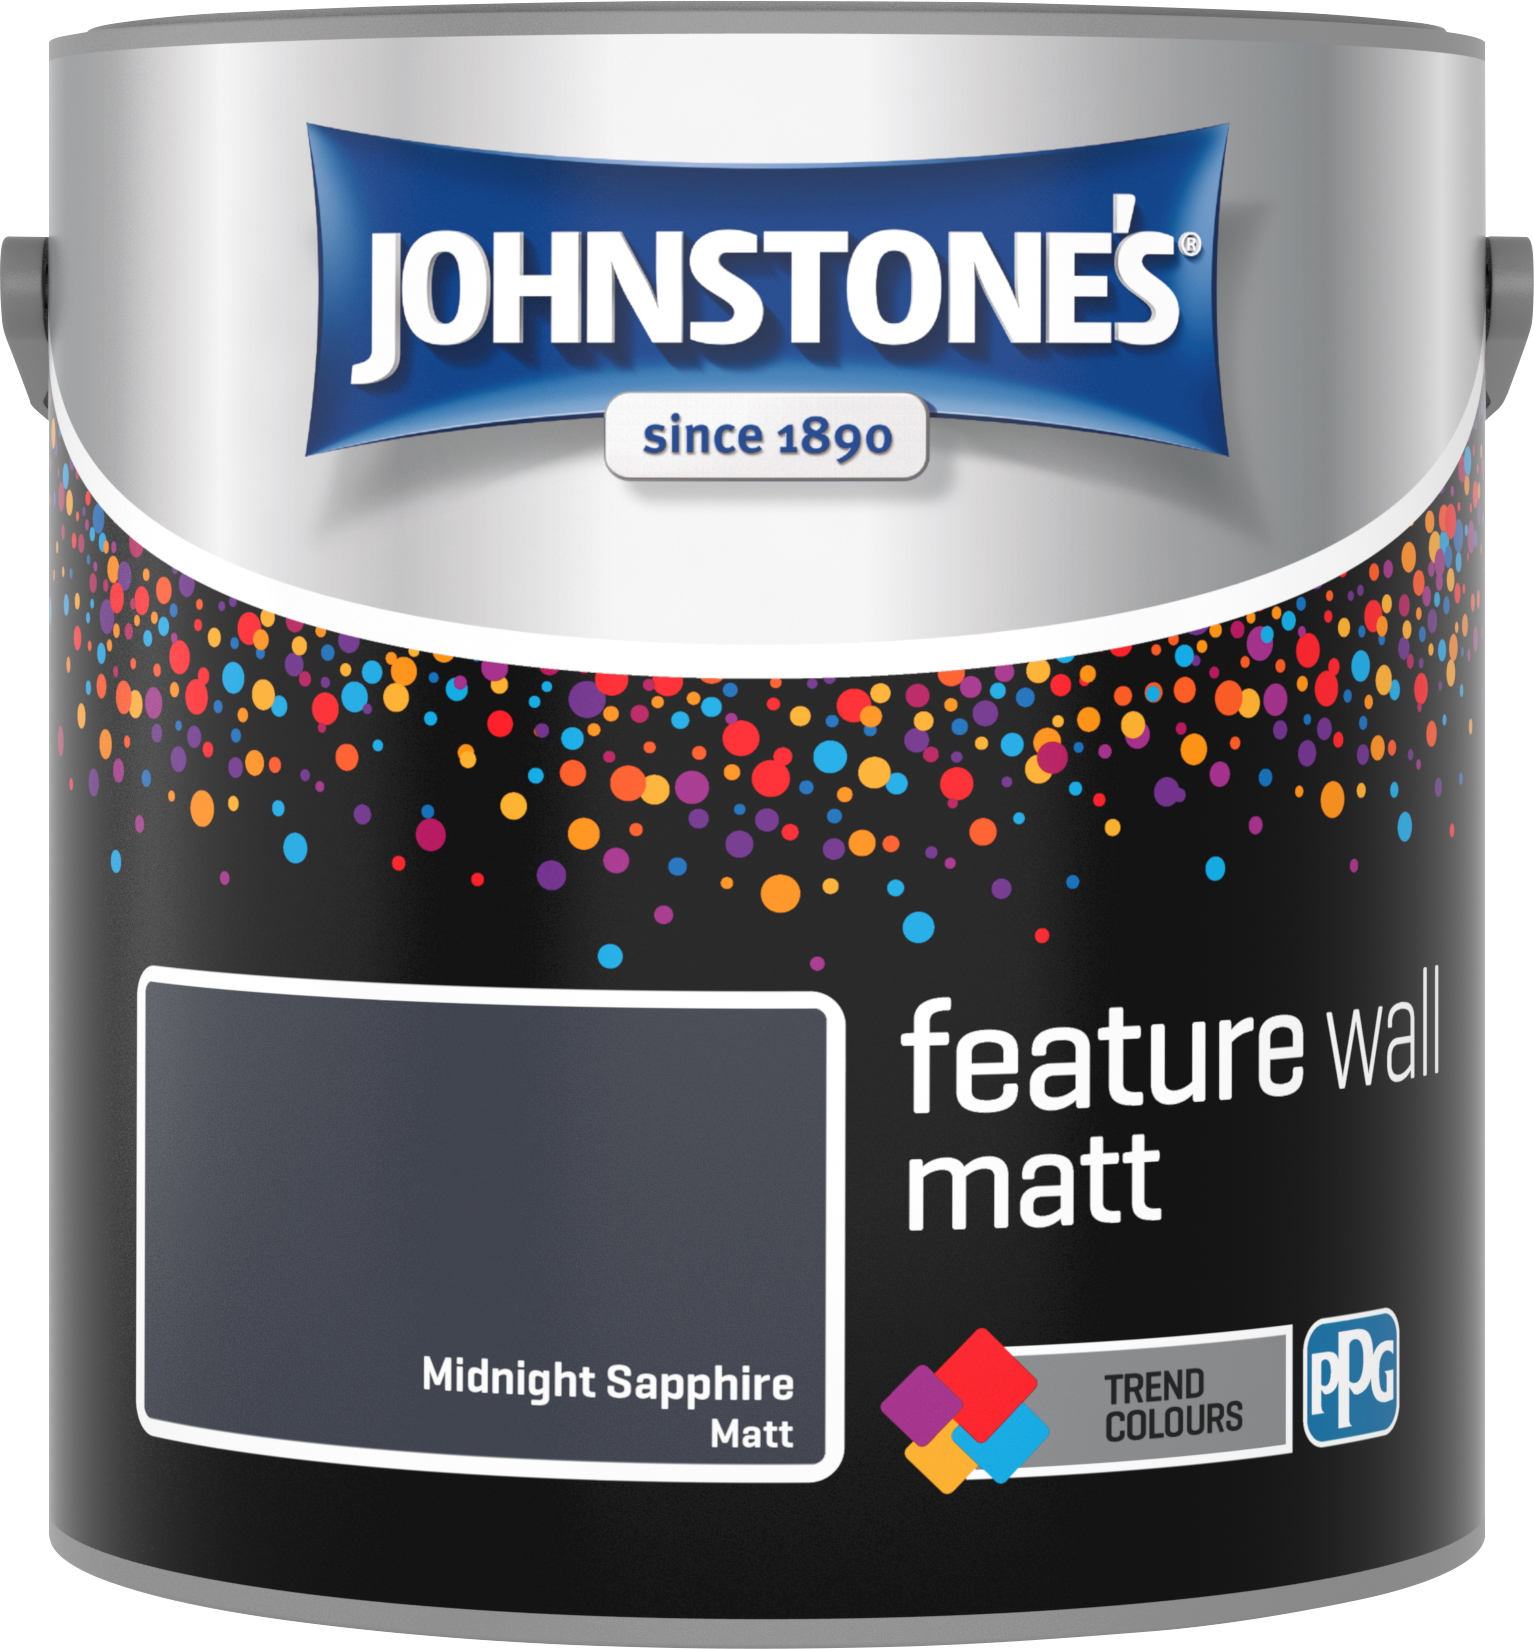 Johnstone's 2.5 Litre Feature Wall Matt Emulsion Paint - Midnight Sapphire